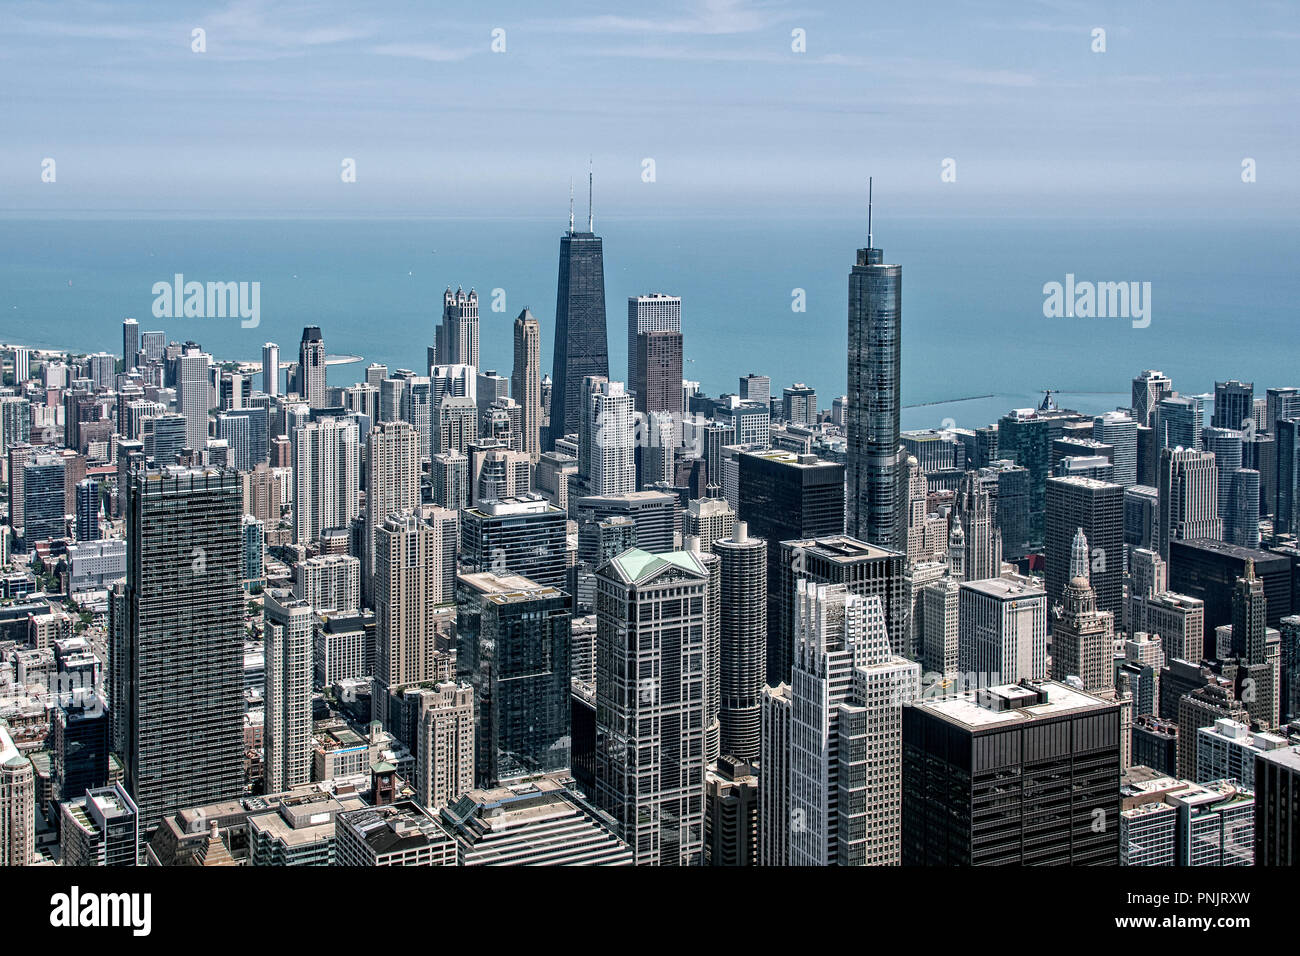 View of skyscrapers from Willis Tower Skydeck with the Hancock Building, Trump International Tower and Lake Michigan, Downtown, Chicago, IL. - Stock Image